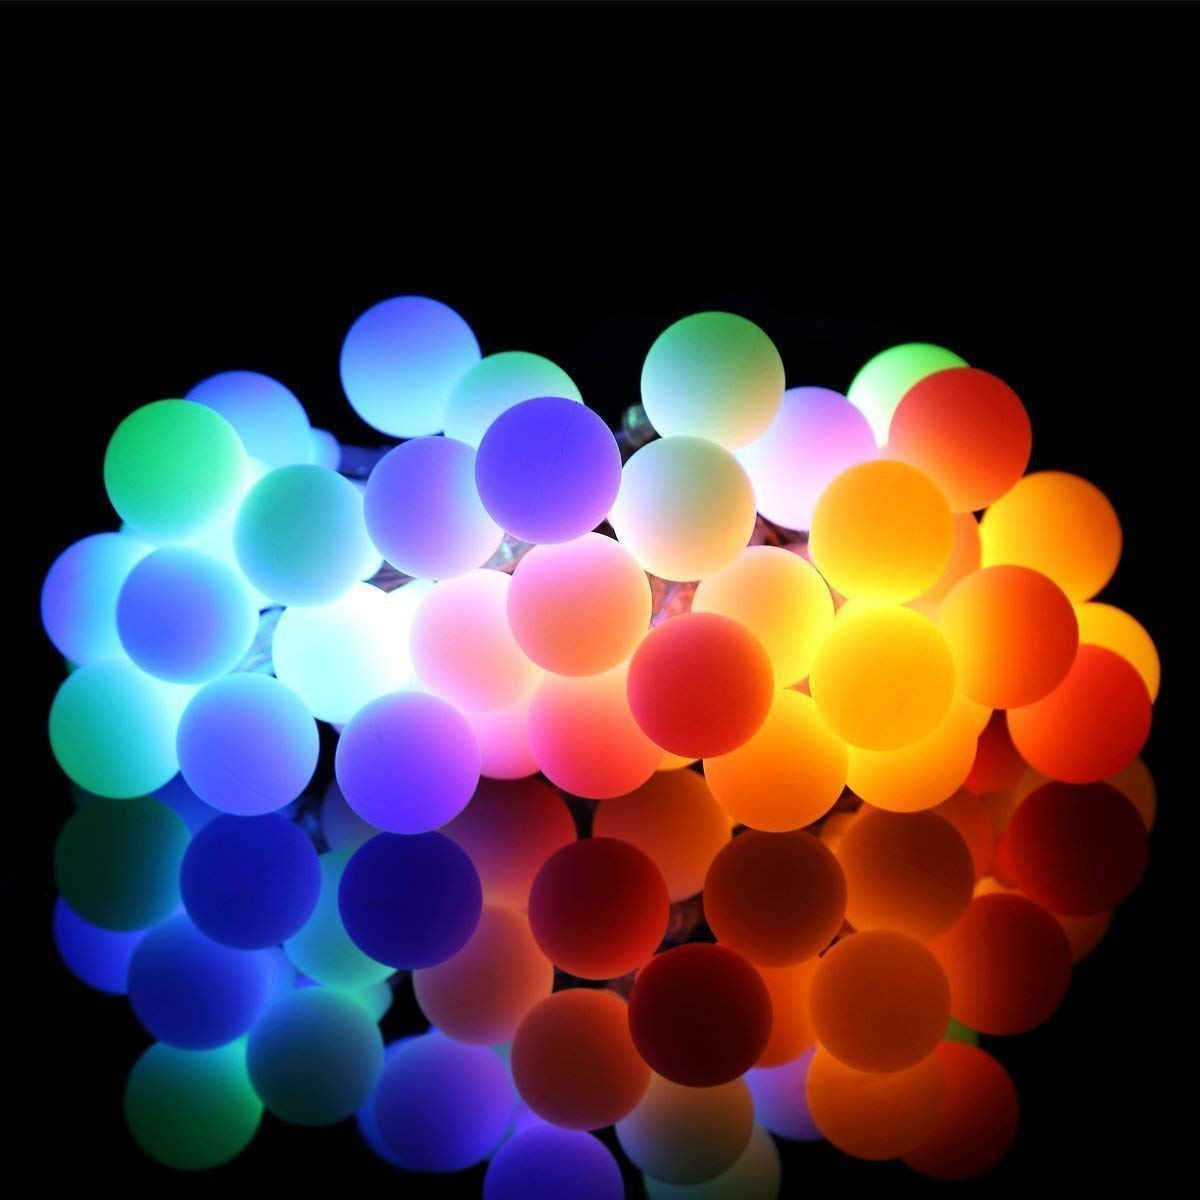 ALOVECO LED String Lights, LED Waterproof Lights